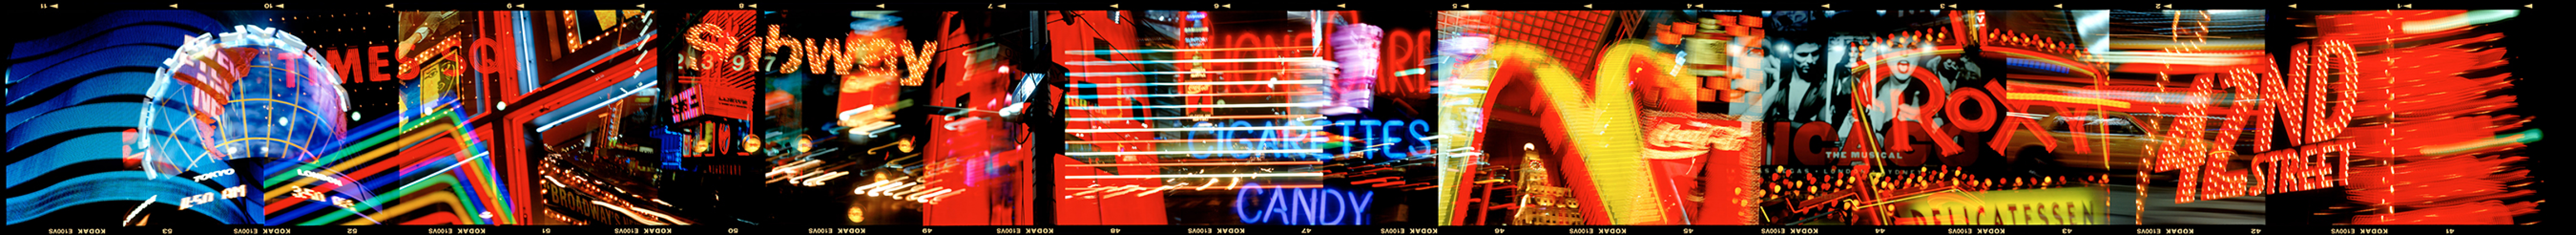 Neon Times Square 2000 © William Furniss